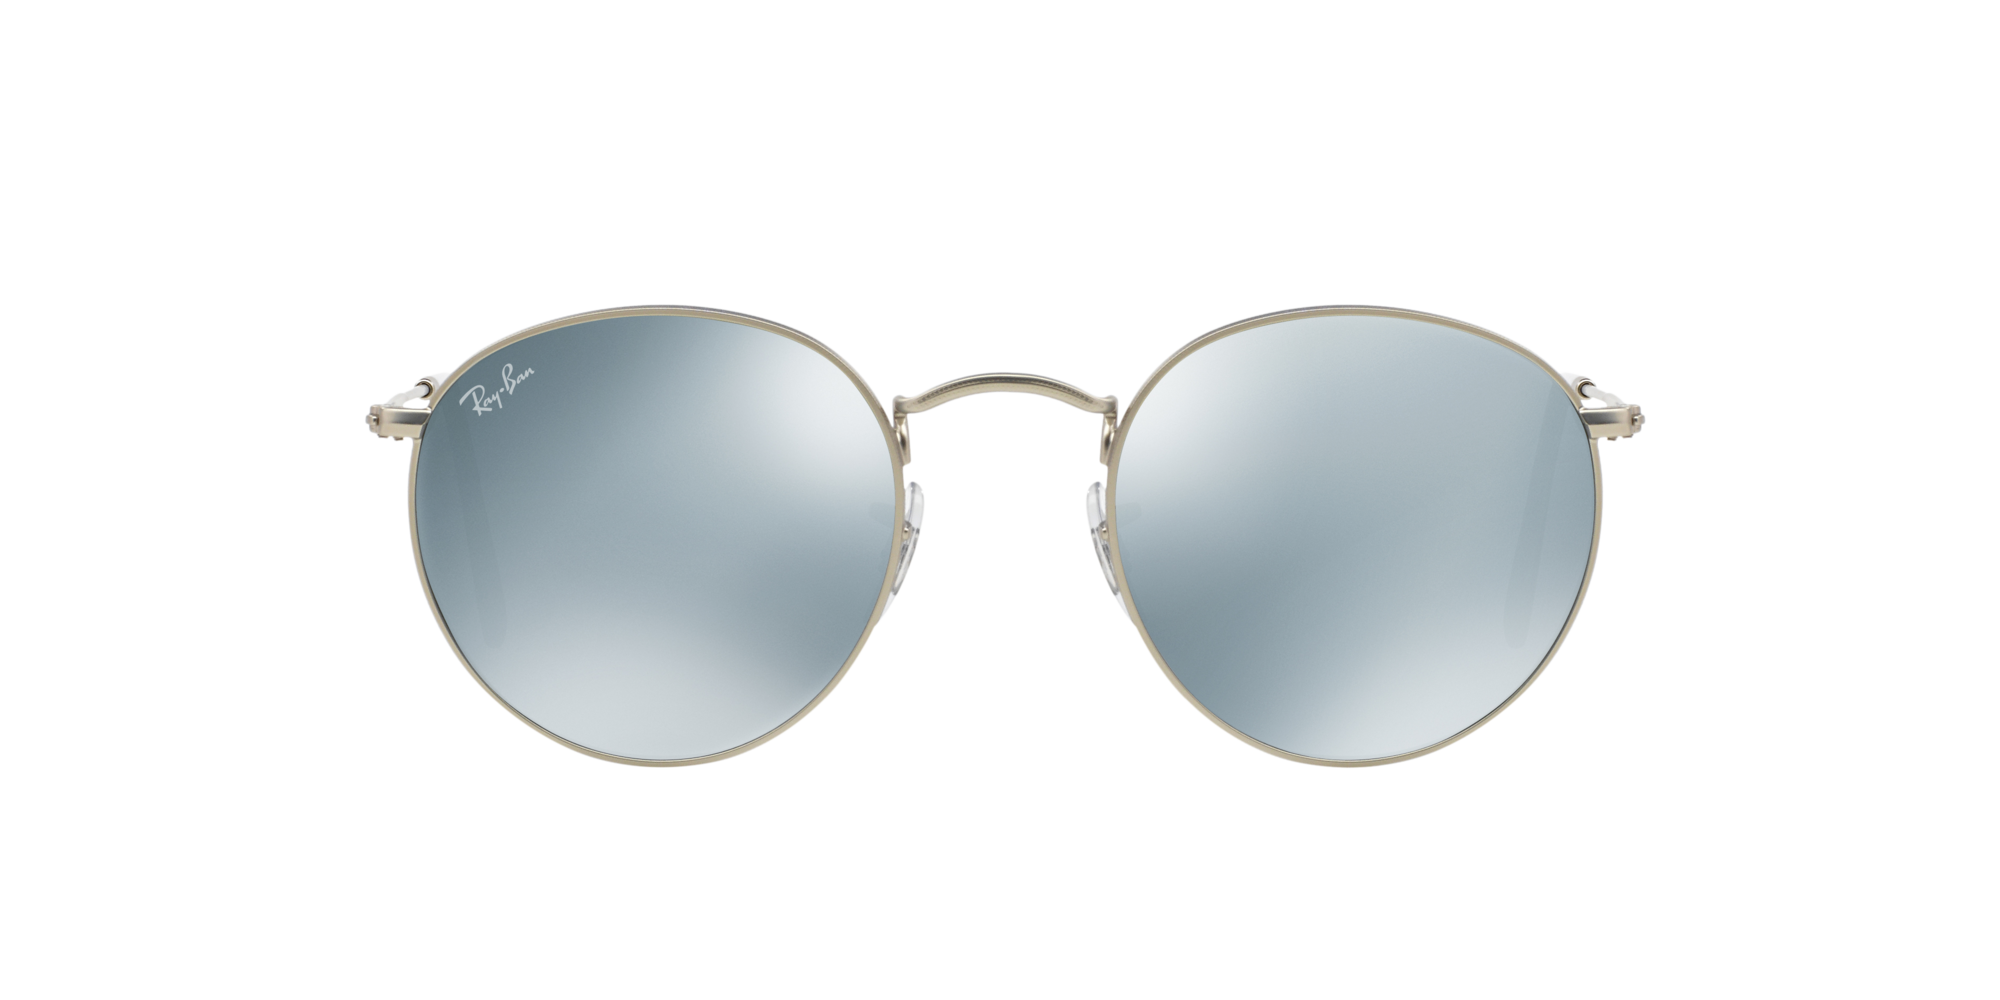 RAY-BAN ROUND METAL RB 3447 019/30 -360